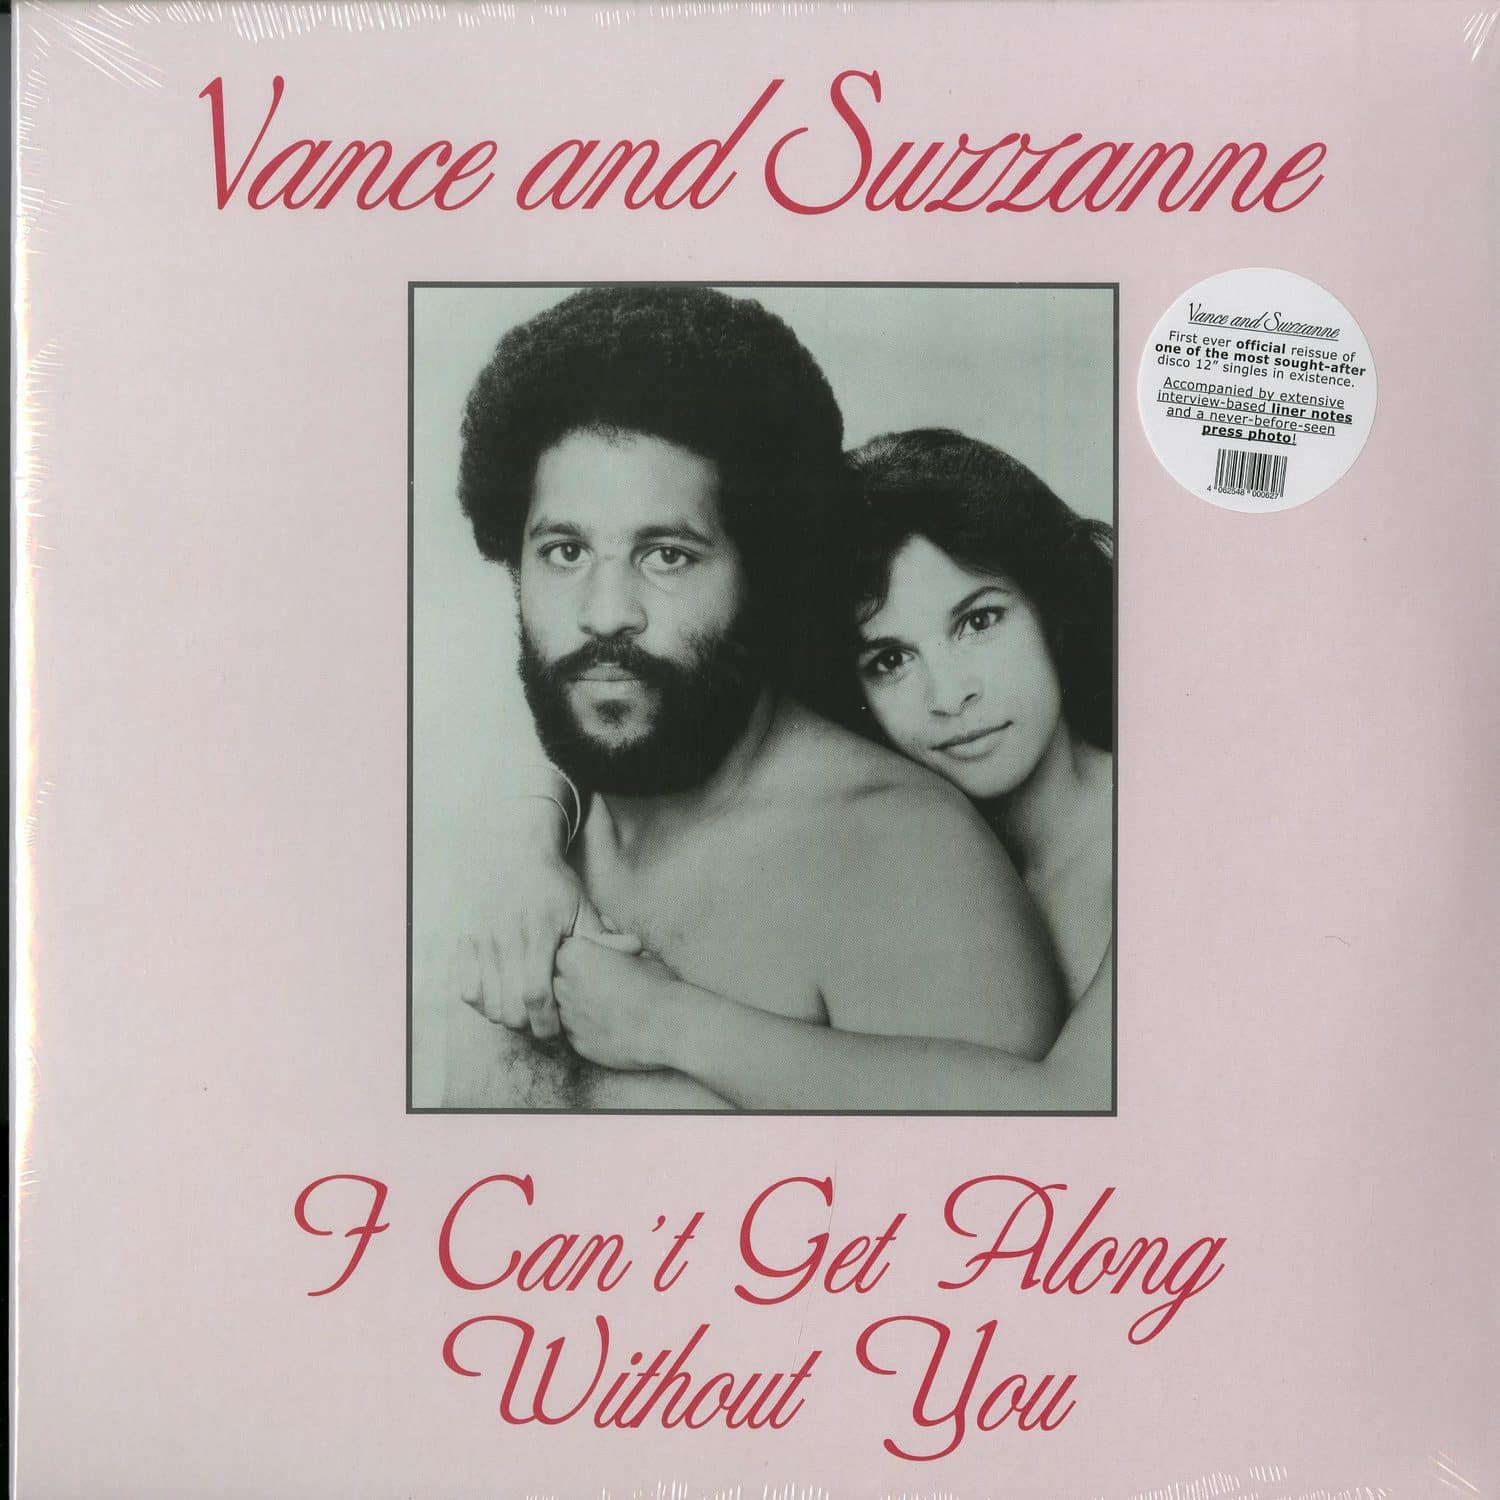 Vance & Suzzanne - I CANT GET ALONG WITHOUT YOU